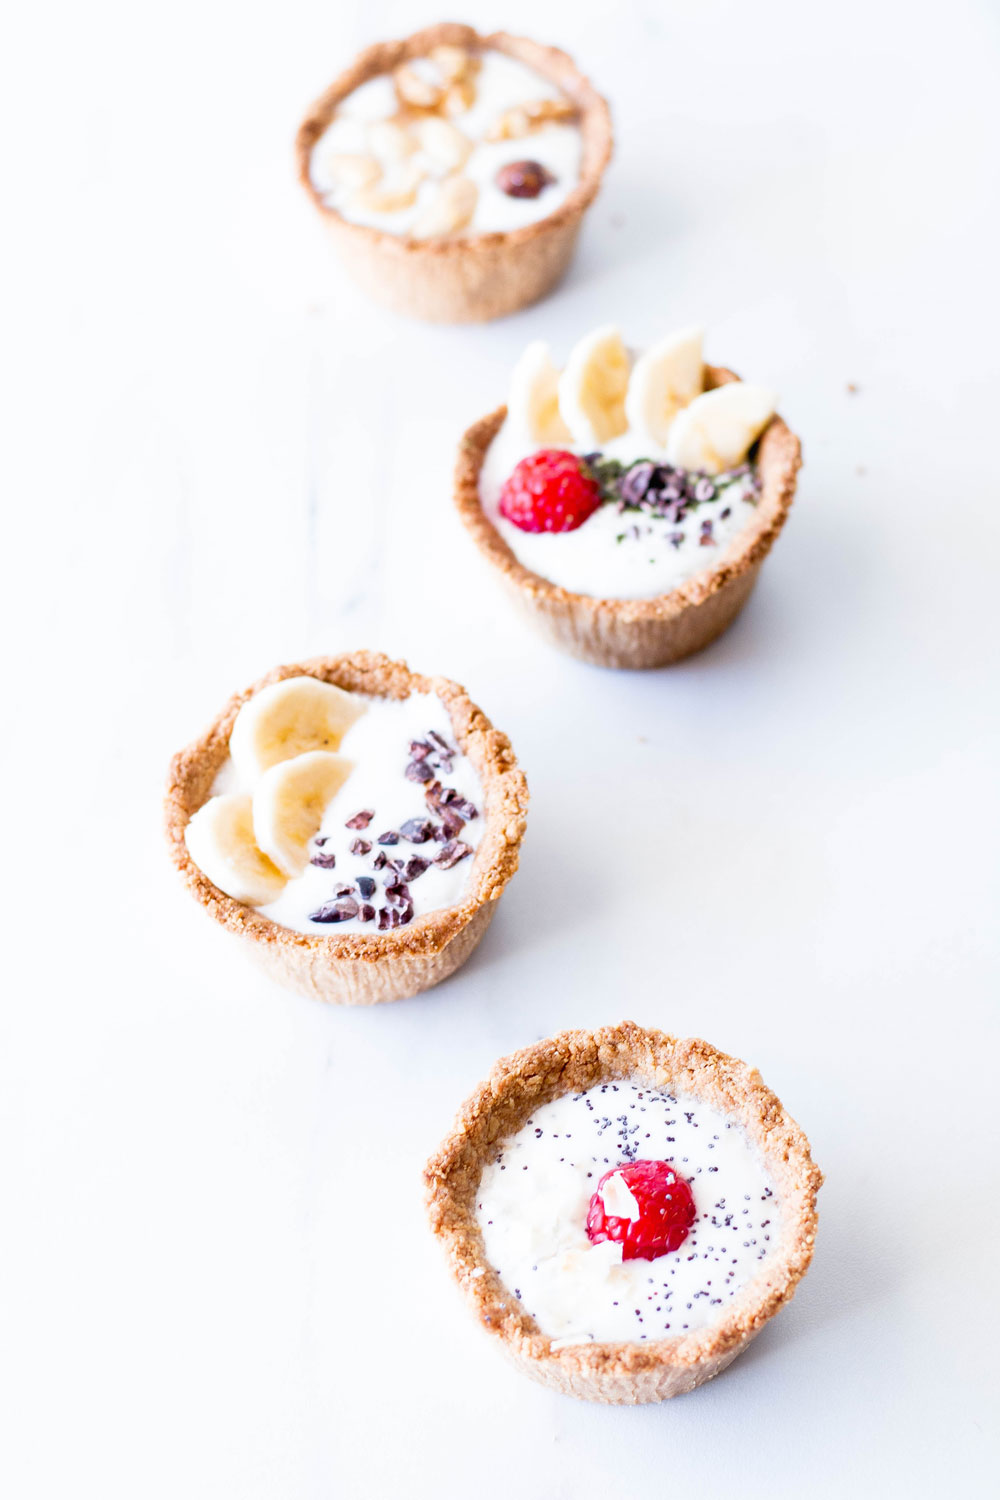 Breakfast is the best time to give your bone health a lift. And eating calcium-rich foods in the morning, like these Yummy Granola and Yogurt Breakfast Cups, is the best way to do just that. https://www.spotebi.com/recipes/yummy-granola-yogurt-breakfast-cups/